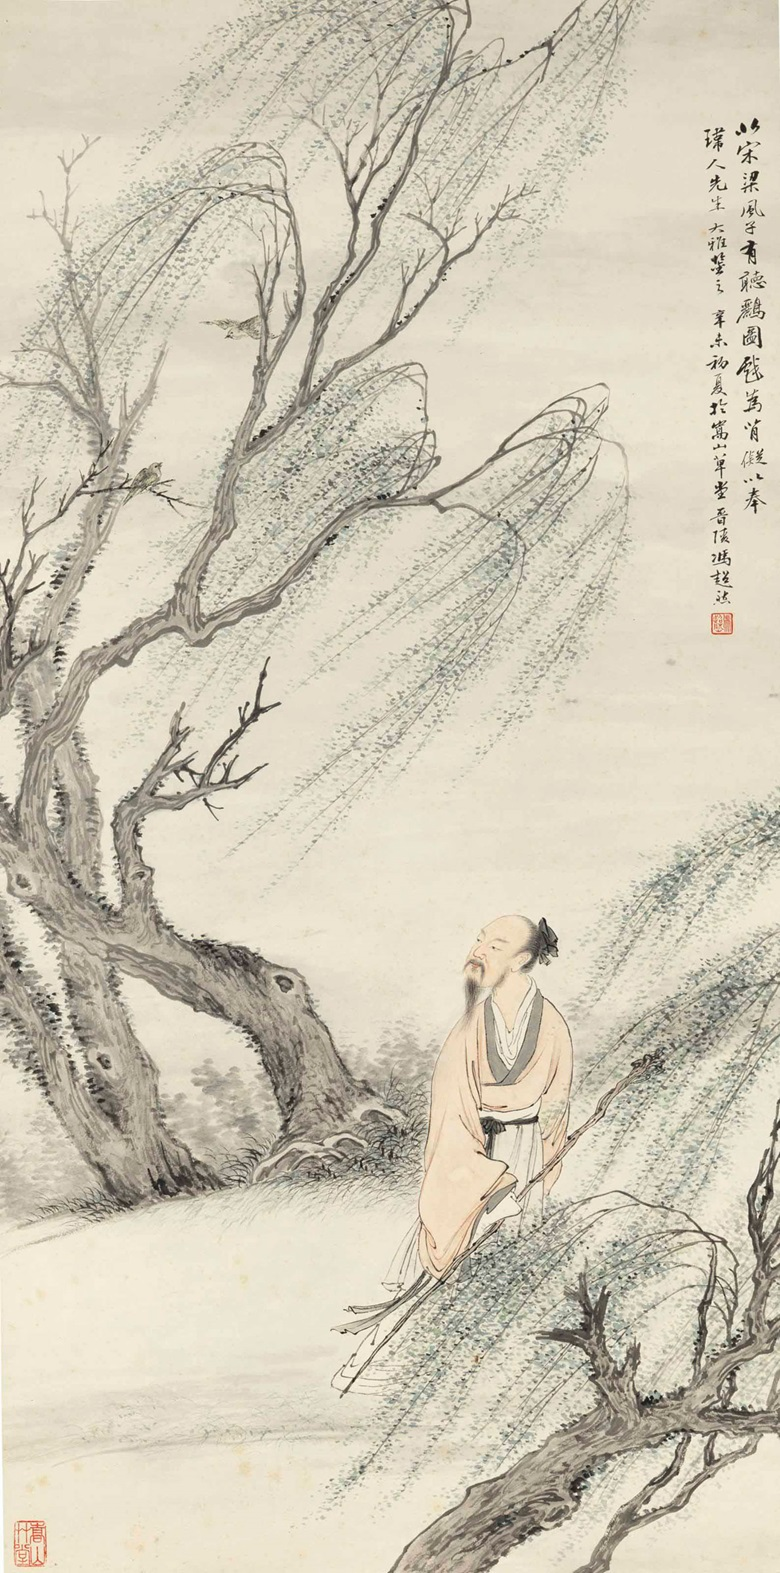 Feng Chaoran (1882-1954), Listening to an Oriole. Hanging scroll, ink and colour on paper. 41¼ x 20½ in (104.8 x 52 cm). Estimate $4,000-6,000. This lot is offered in Fine Chinese Paintings on 14 March 2017 at Christie's in New York